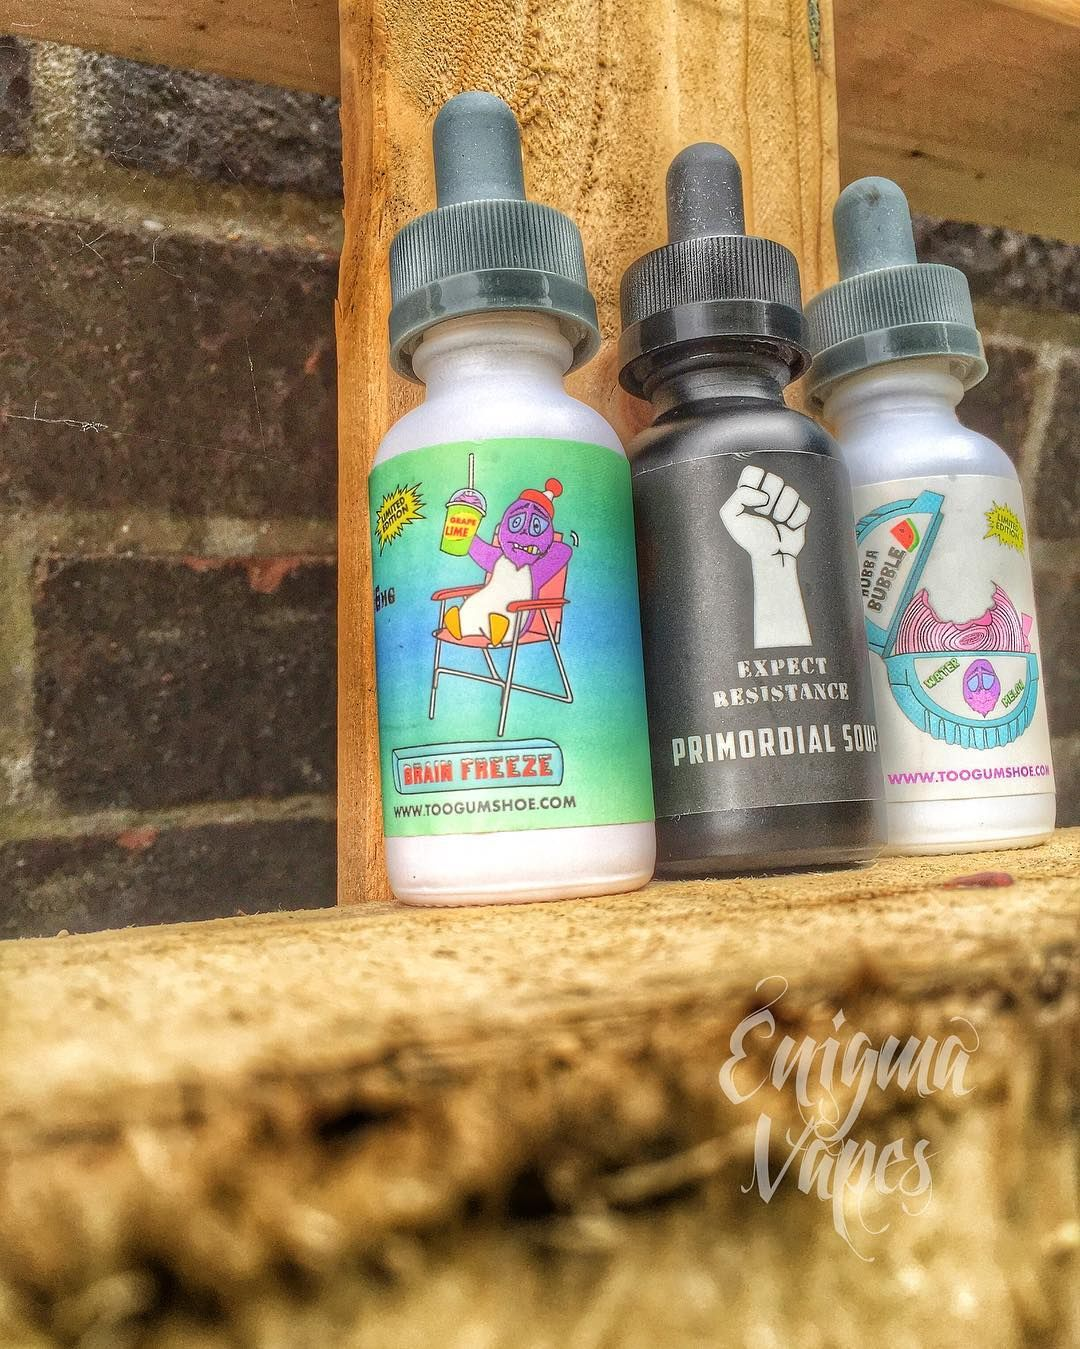 The line up from @expectresistancevapes looking ready for action!  Have you joined the resistance and given them a go yet? If not what are you waiting for head on over give them a look like and follow and then give them a shot!  @whitehousevapes @tokenvape @icevapers @vapehousehi @efest_company @mb.boxmods  @oemstreetbrew @modernvapes @mvapesuk @vapeyez @customwoodeu @wulfmods @eclearvape @expectresistancevapes @armlet_official @throwbackjuiceco @pickledbrews @7monkseliquid @vapeboss…